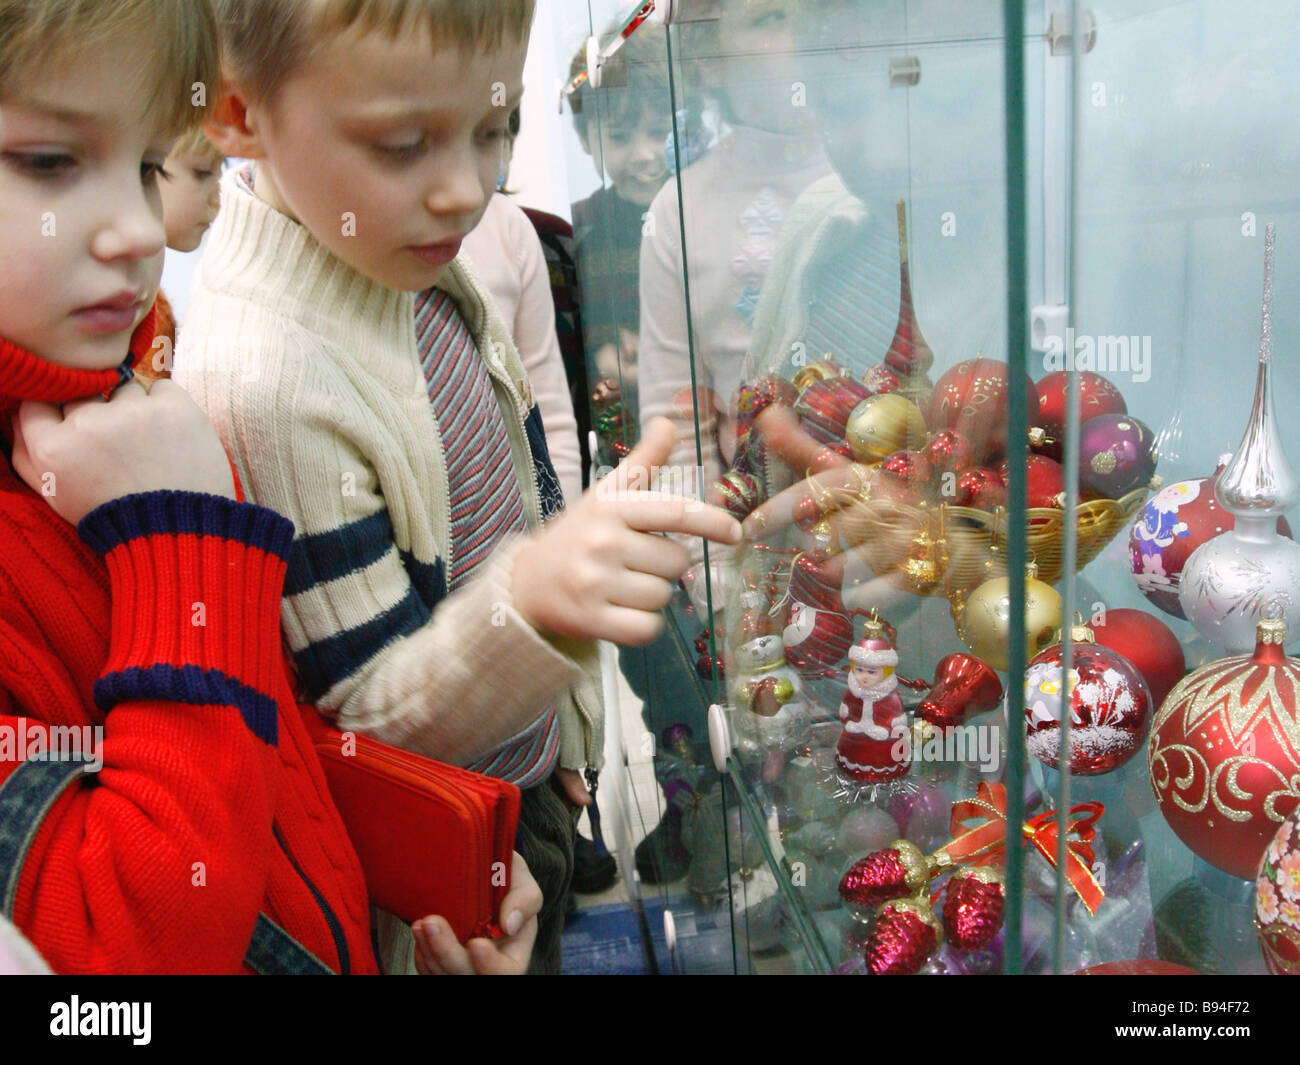 Output by Yolochka plant producing Christmas tree ornaments the town of Vysokovsk - Stock Image